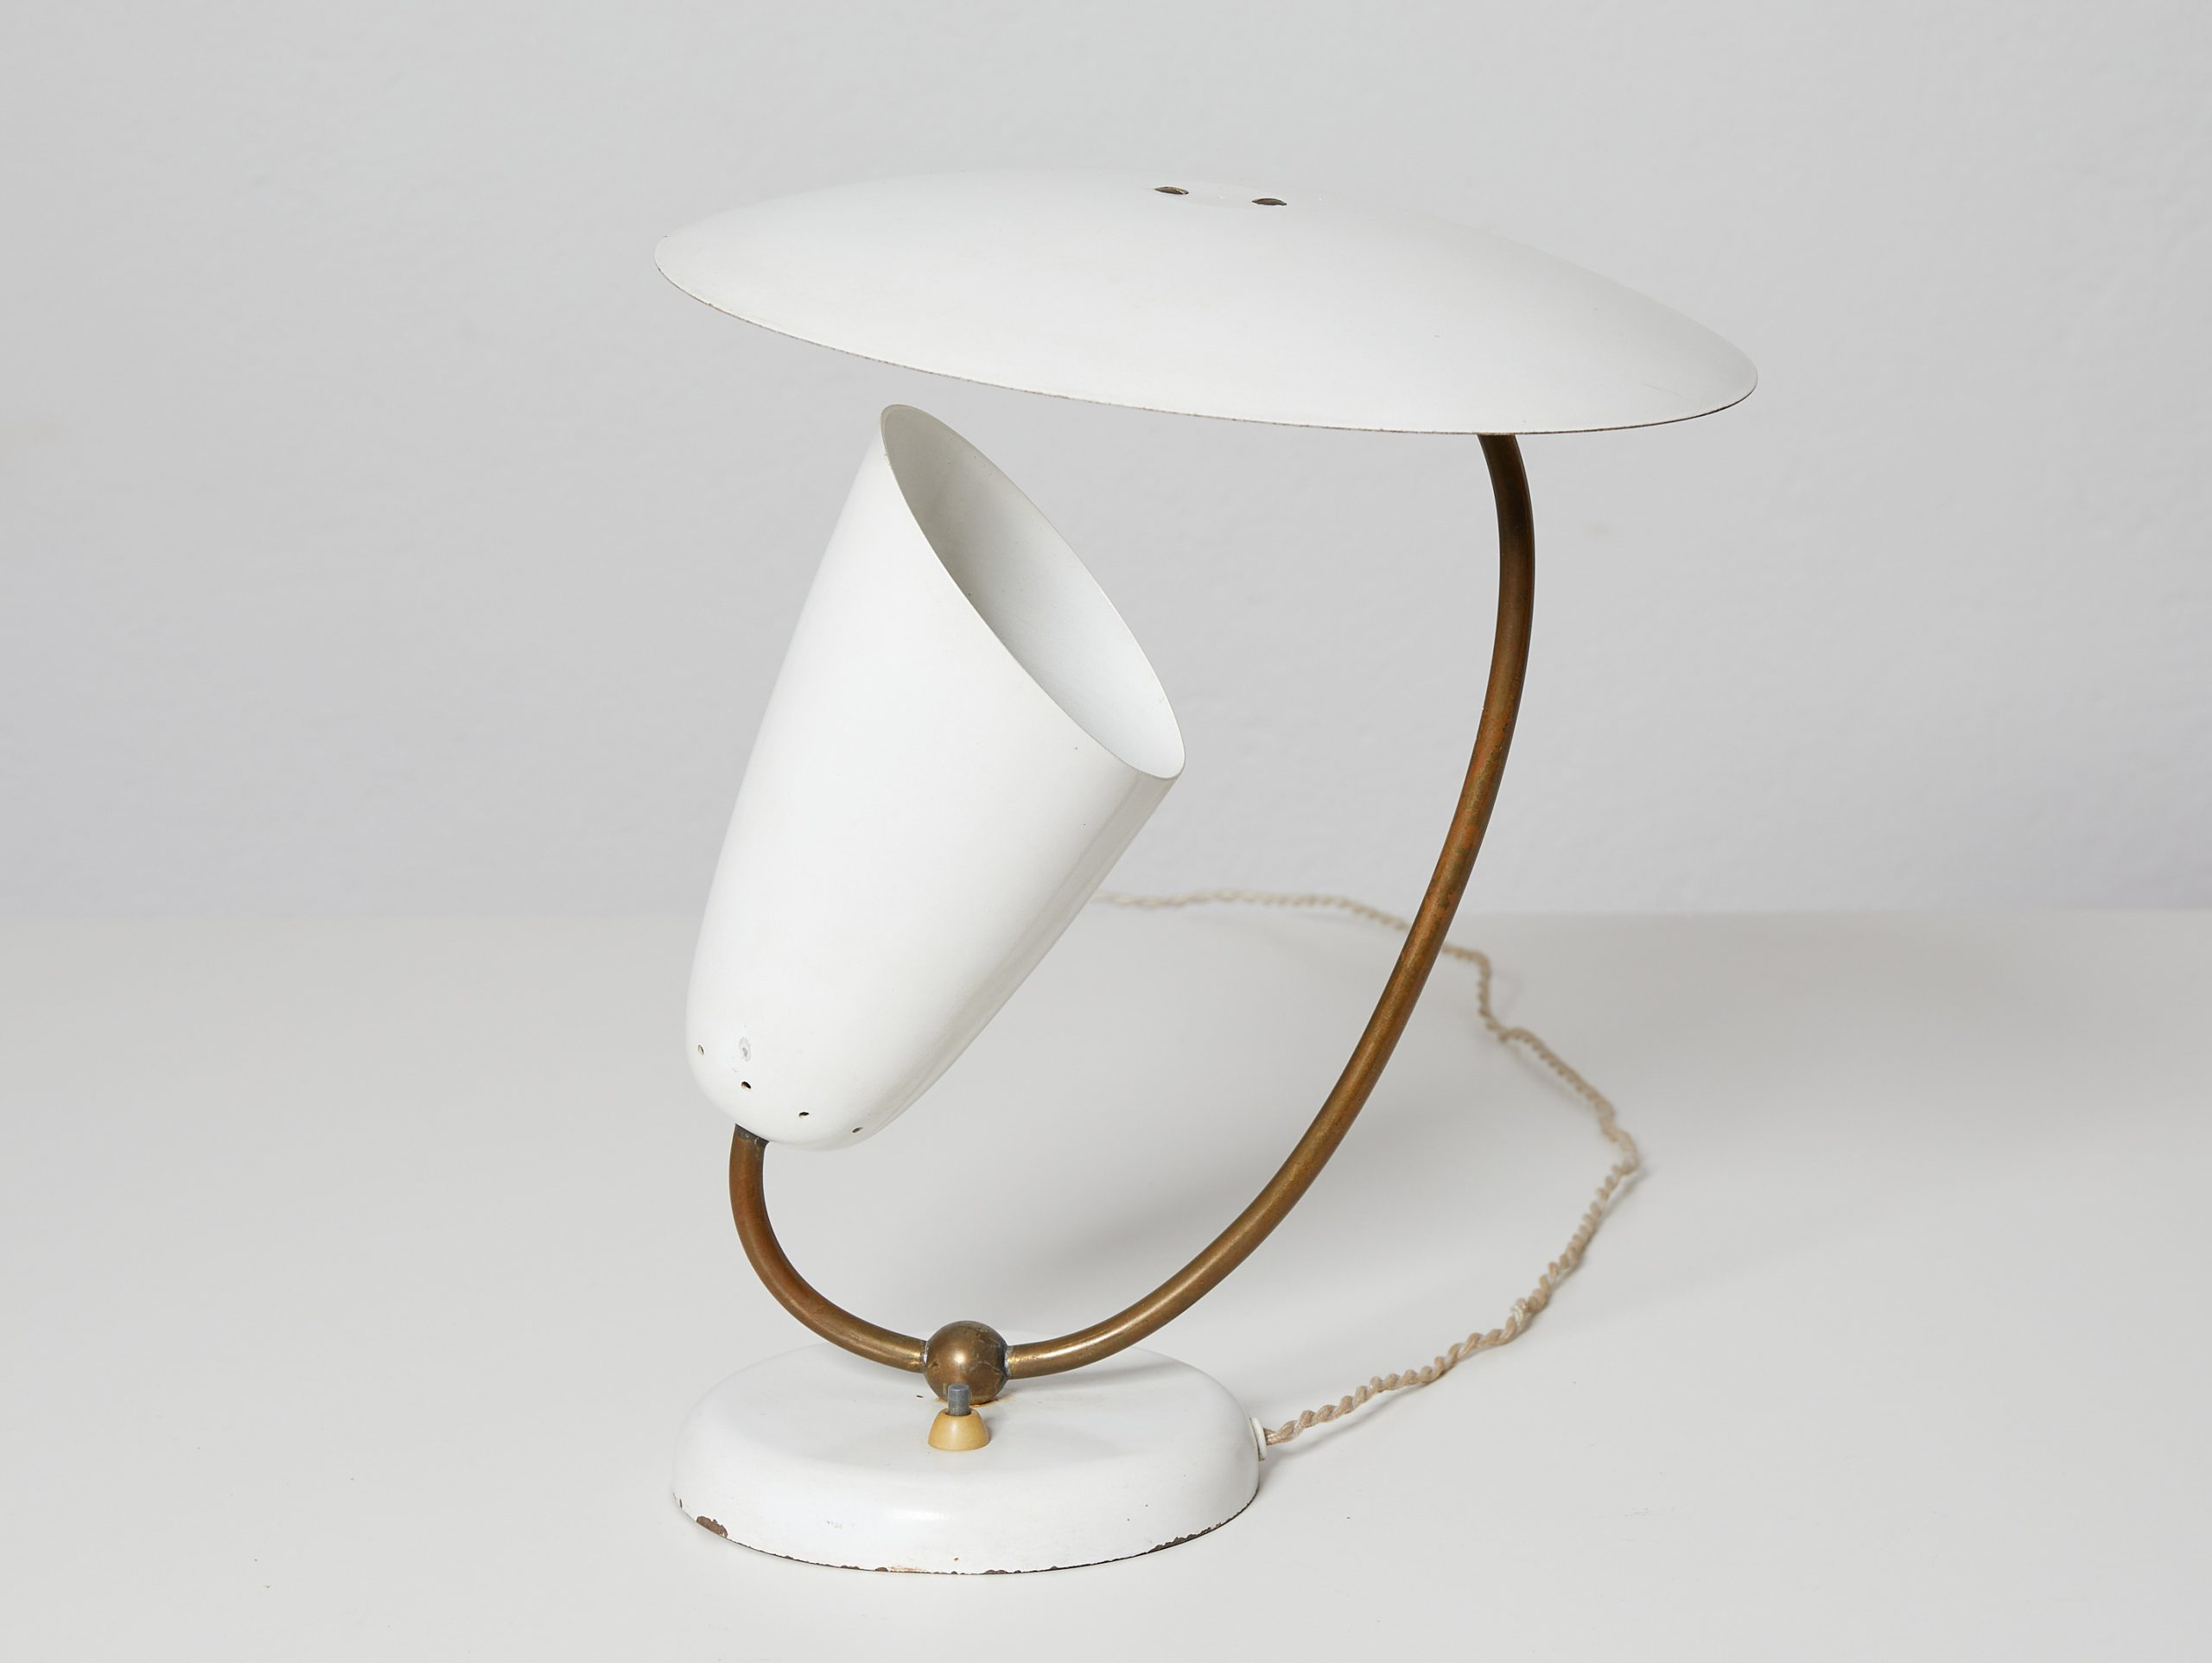 brass-and-enameled-metal-table-lamp-switzerland-1950-image-05